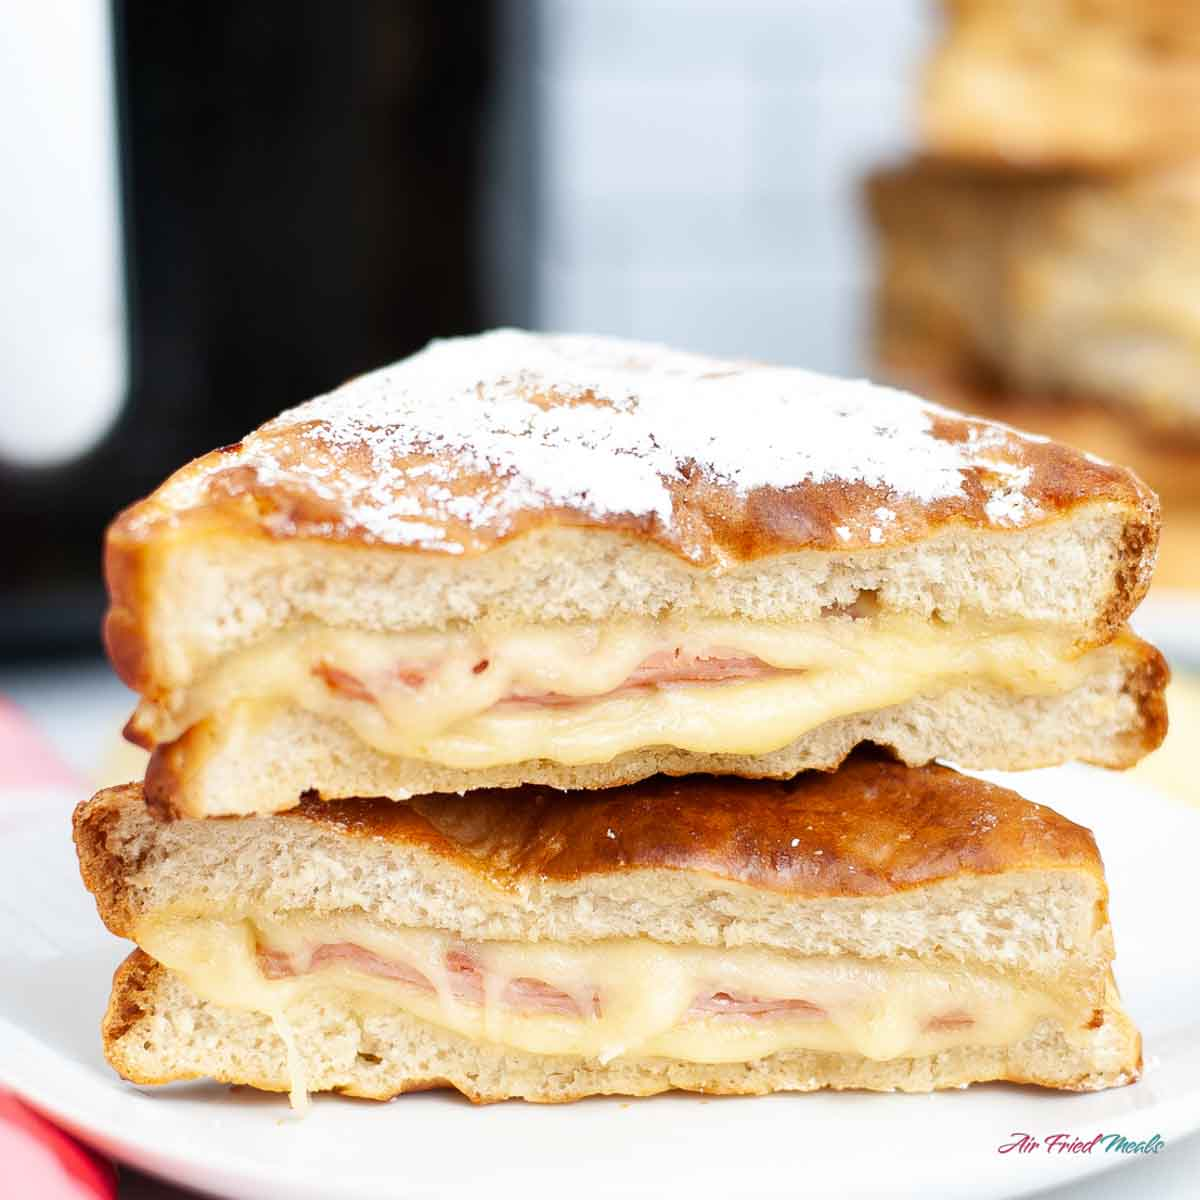 Stacked Monte Cristo sandwiches with a dusting of powdered sugar.